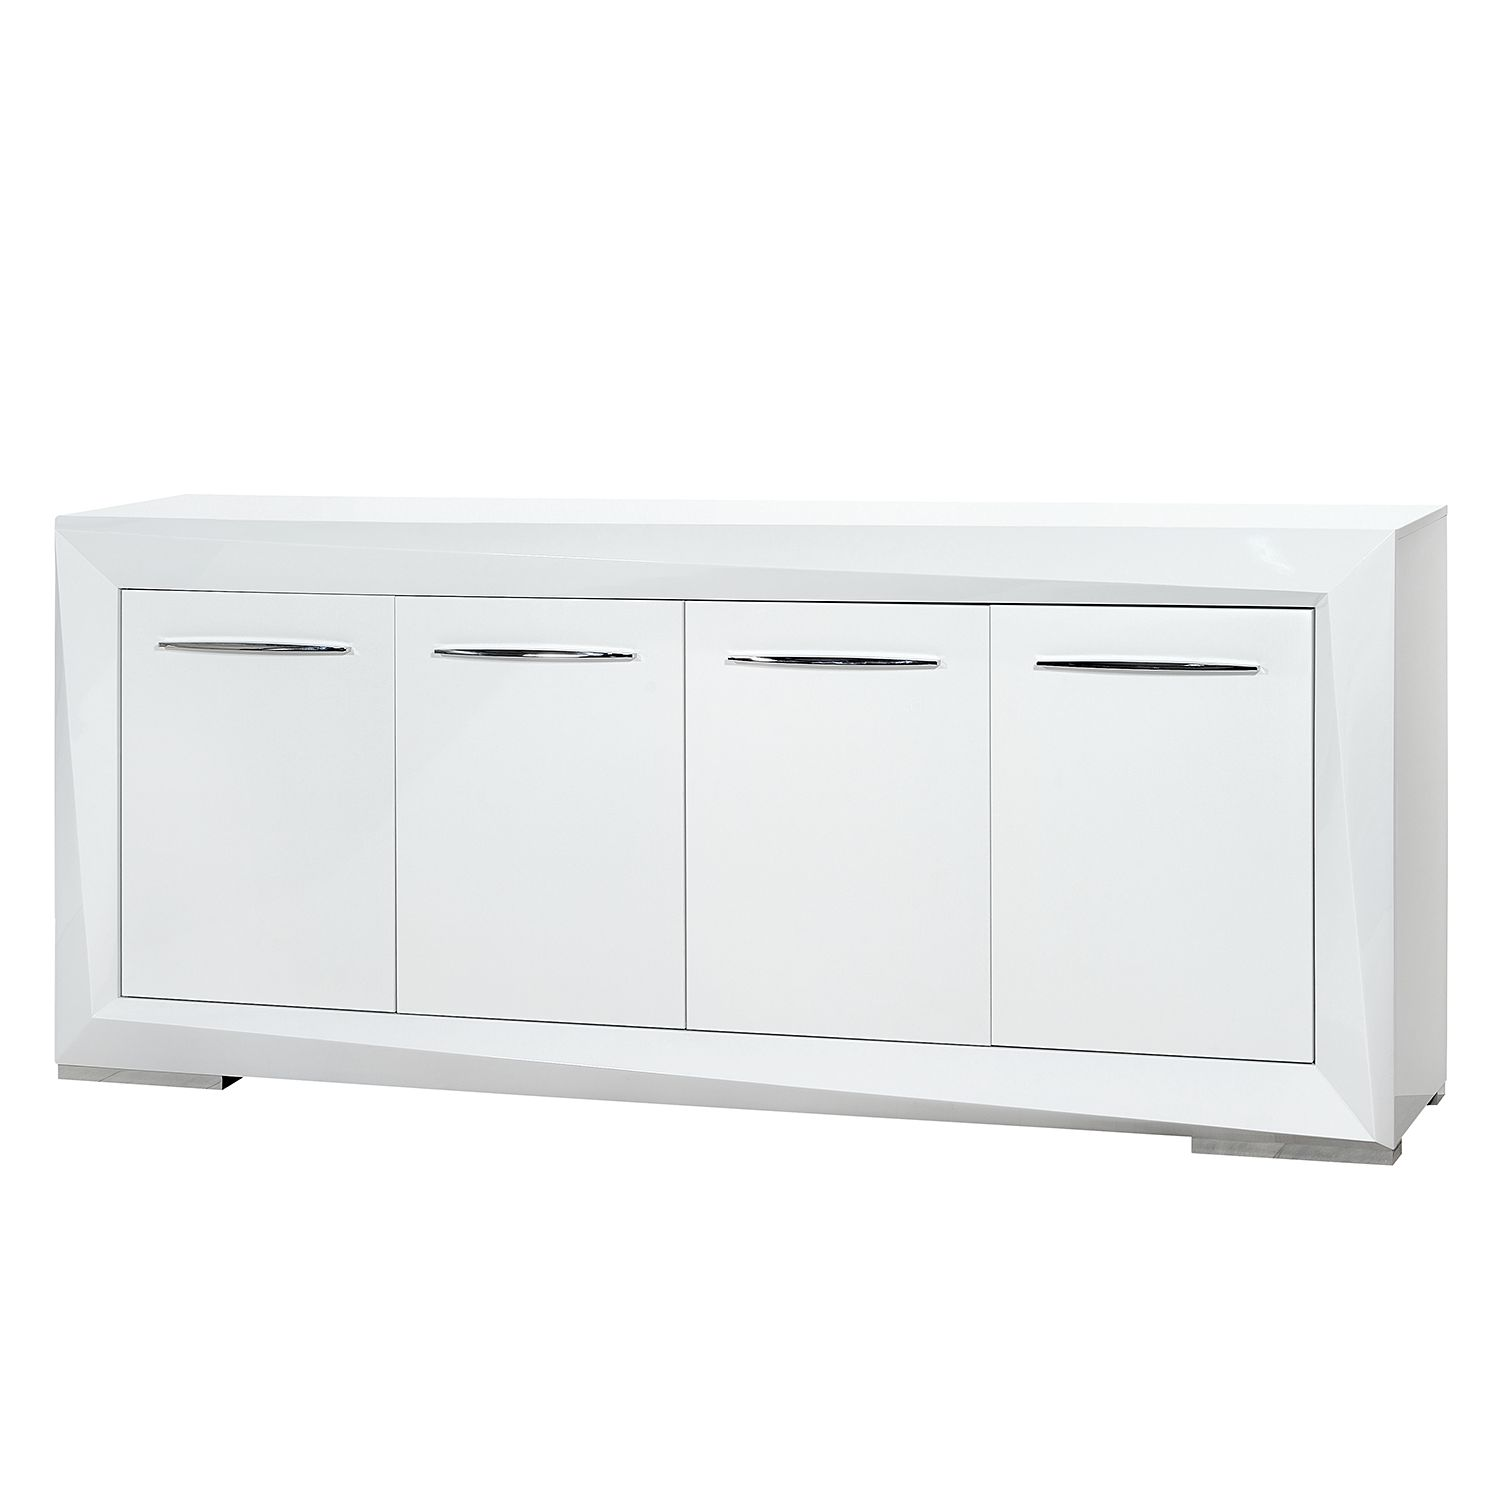 Home 24 - Buffet mamba - blanc brillant, sciae